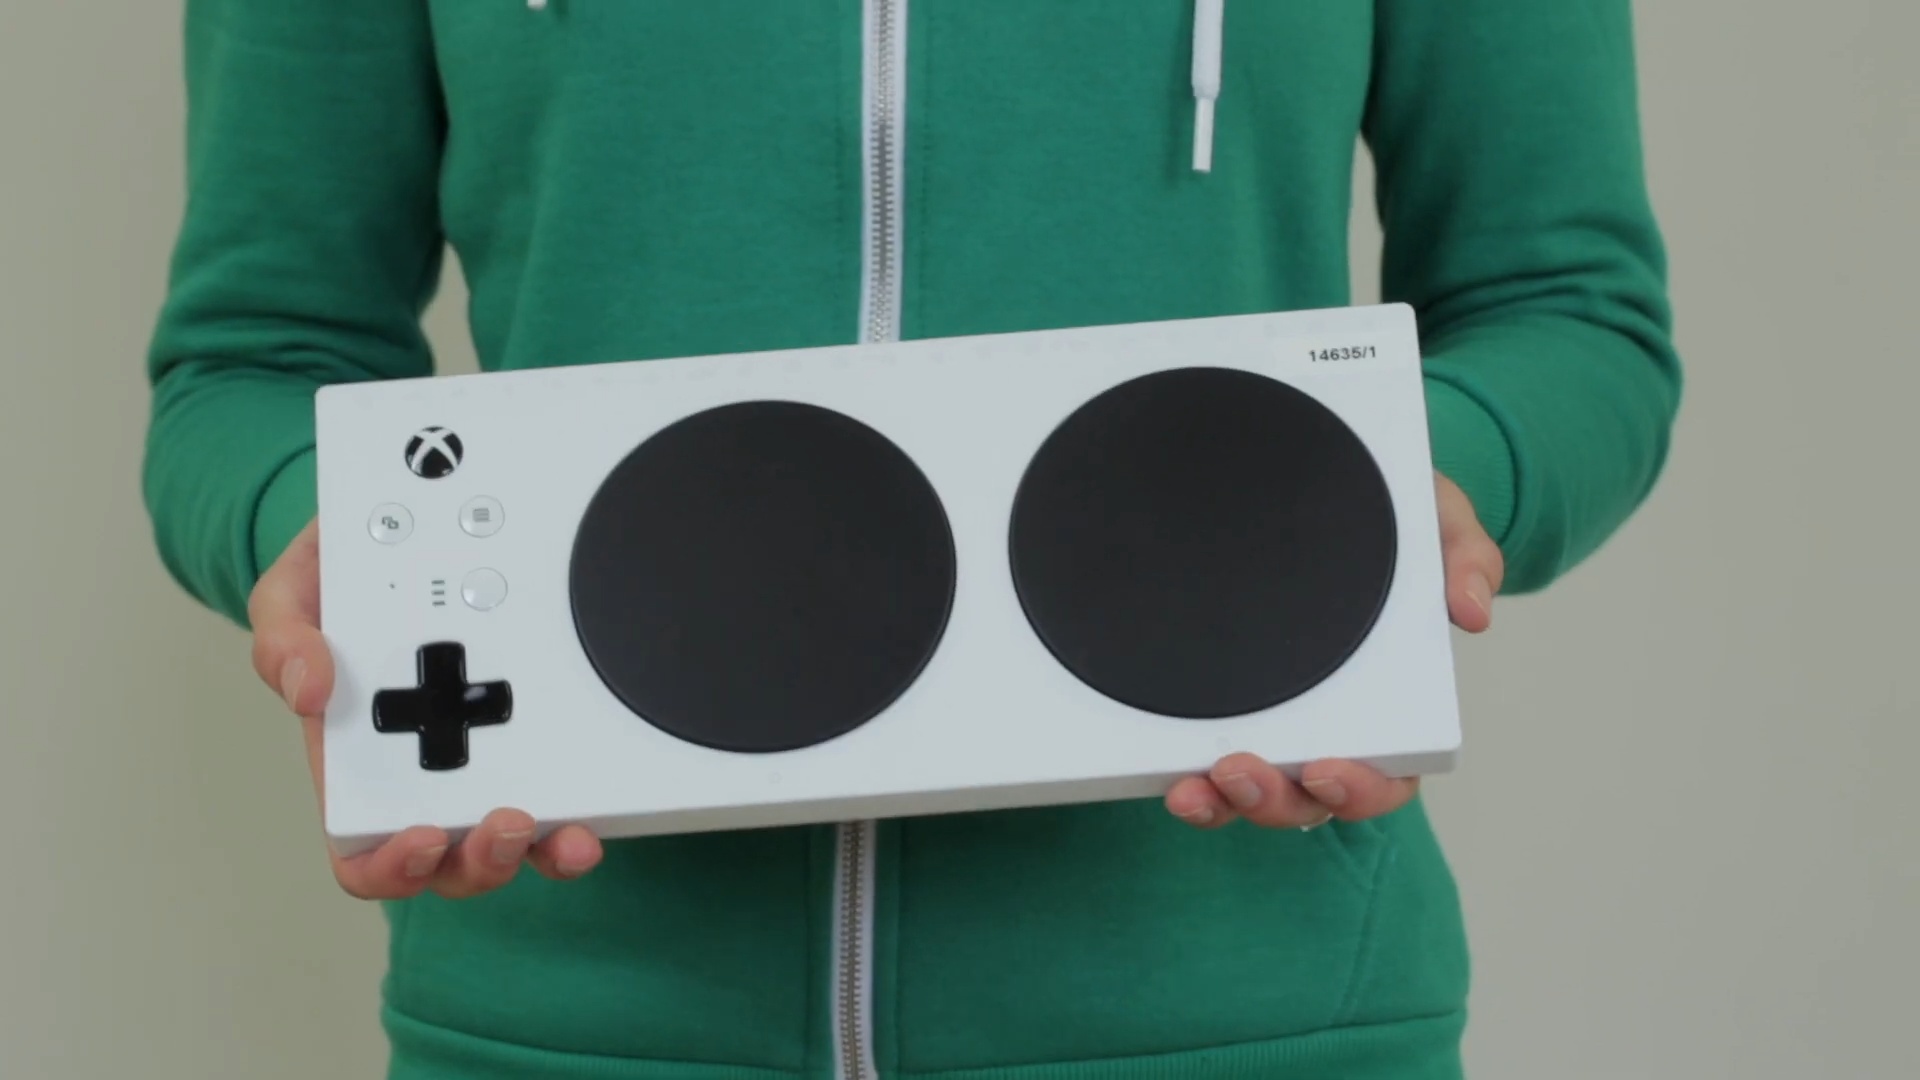 An Xbox Adaptive Controller being held.